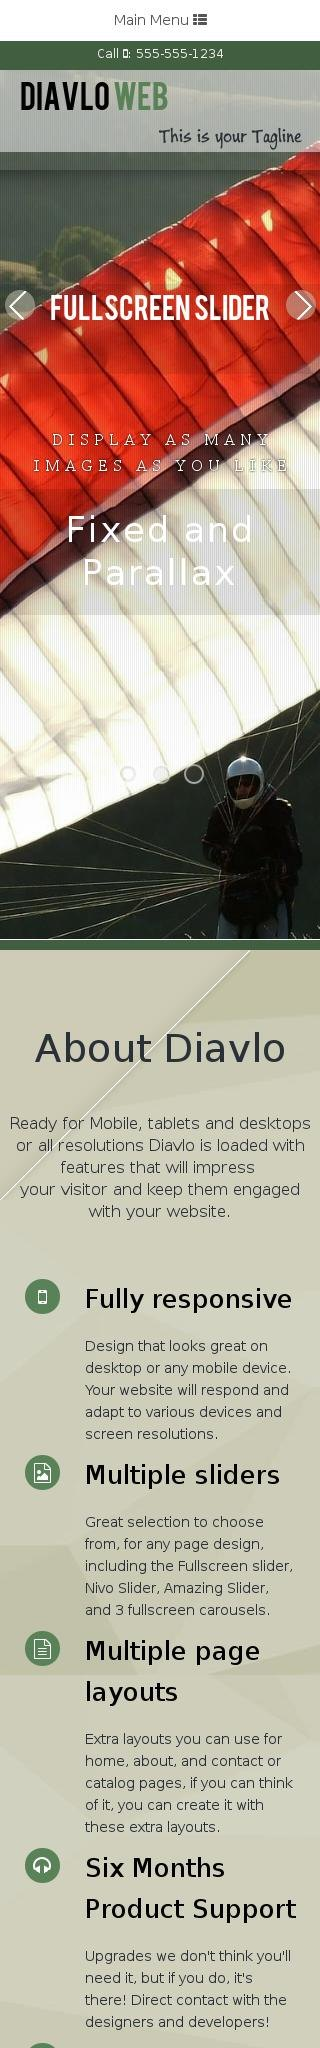 Mobile: Sky-diving Web Template